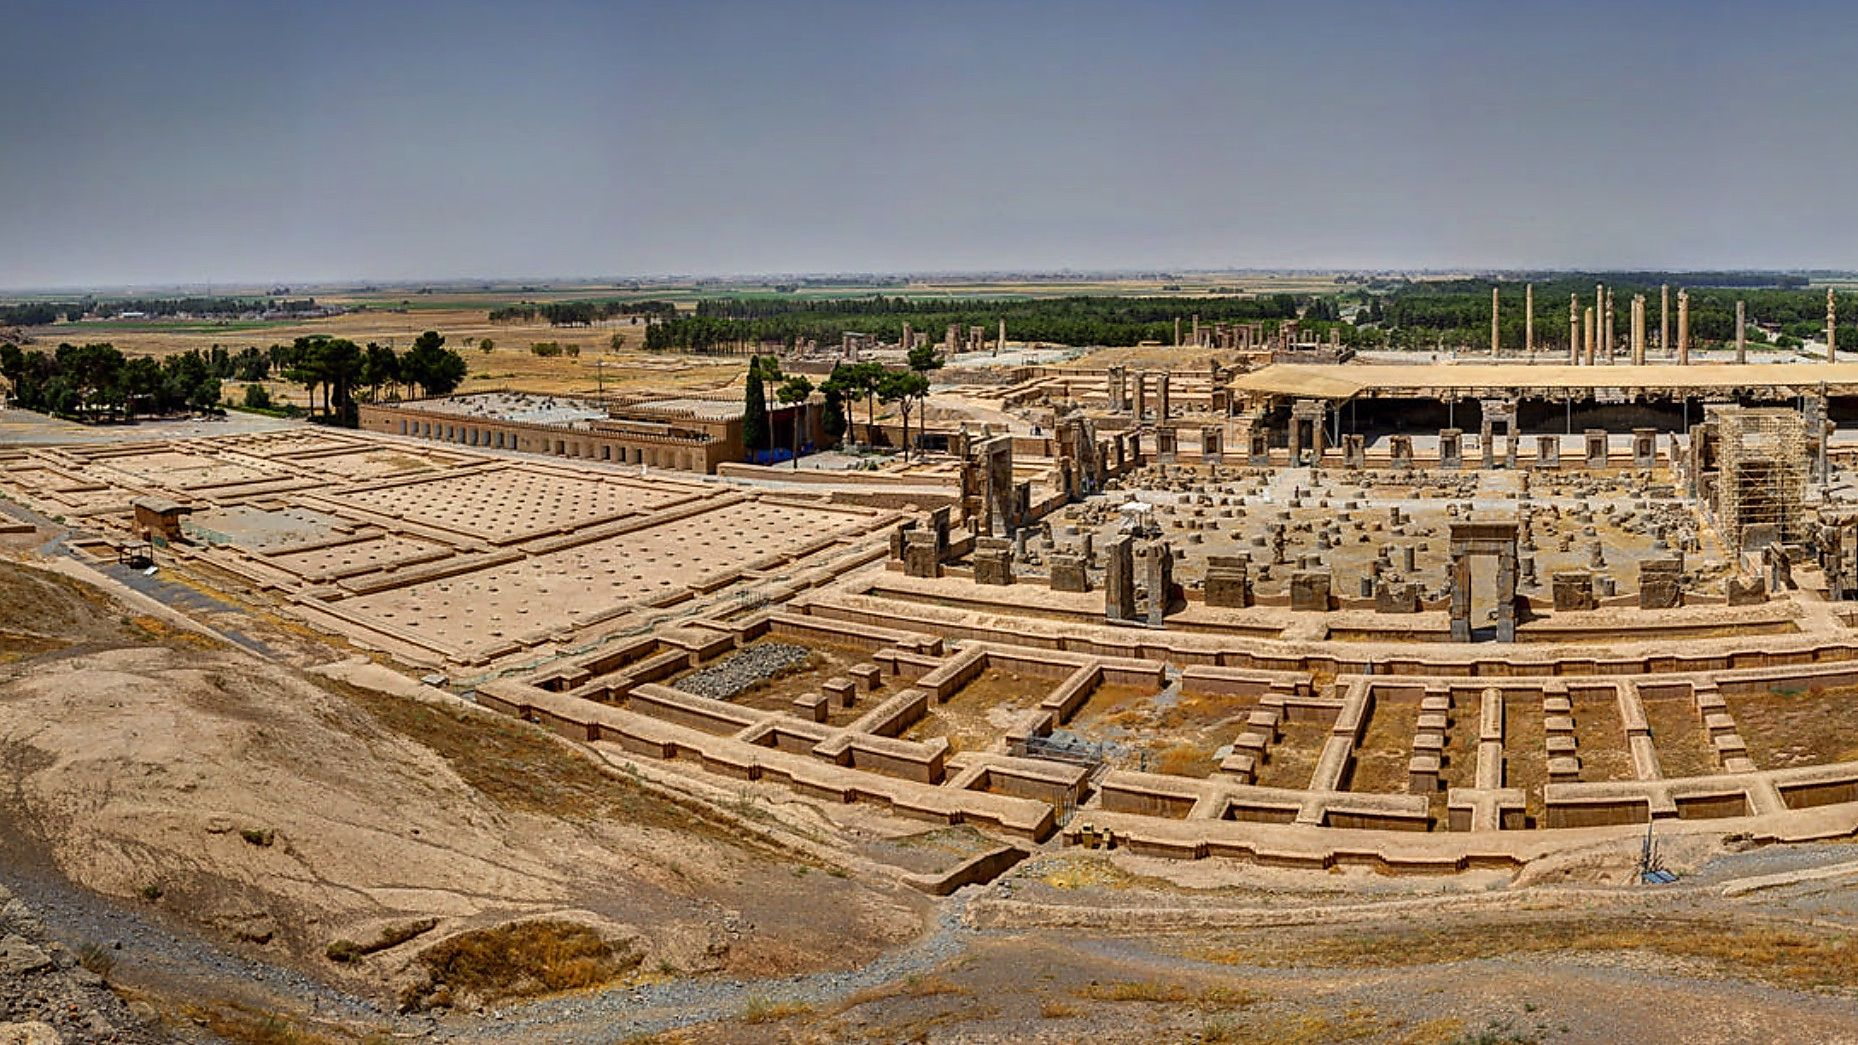 panoramic view photo over persepolis in iran